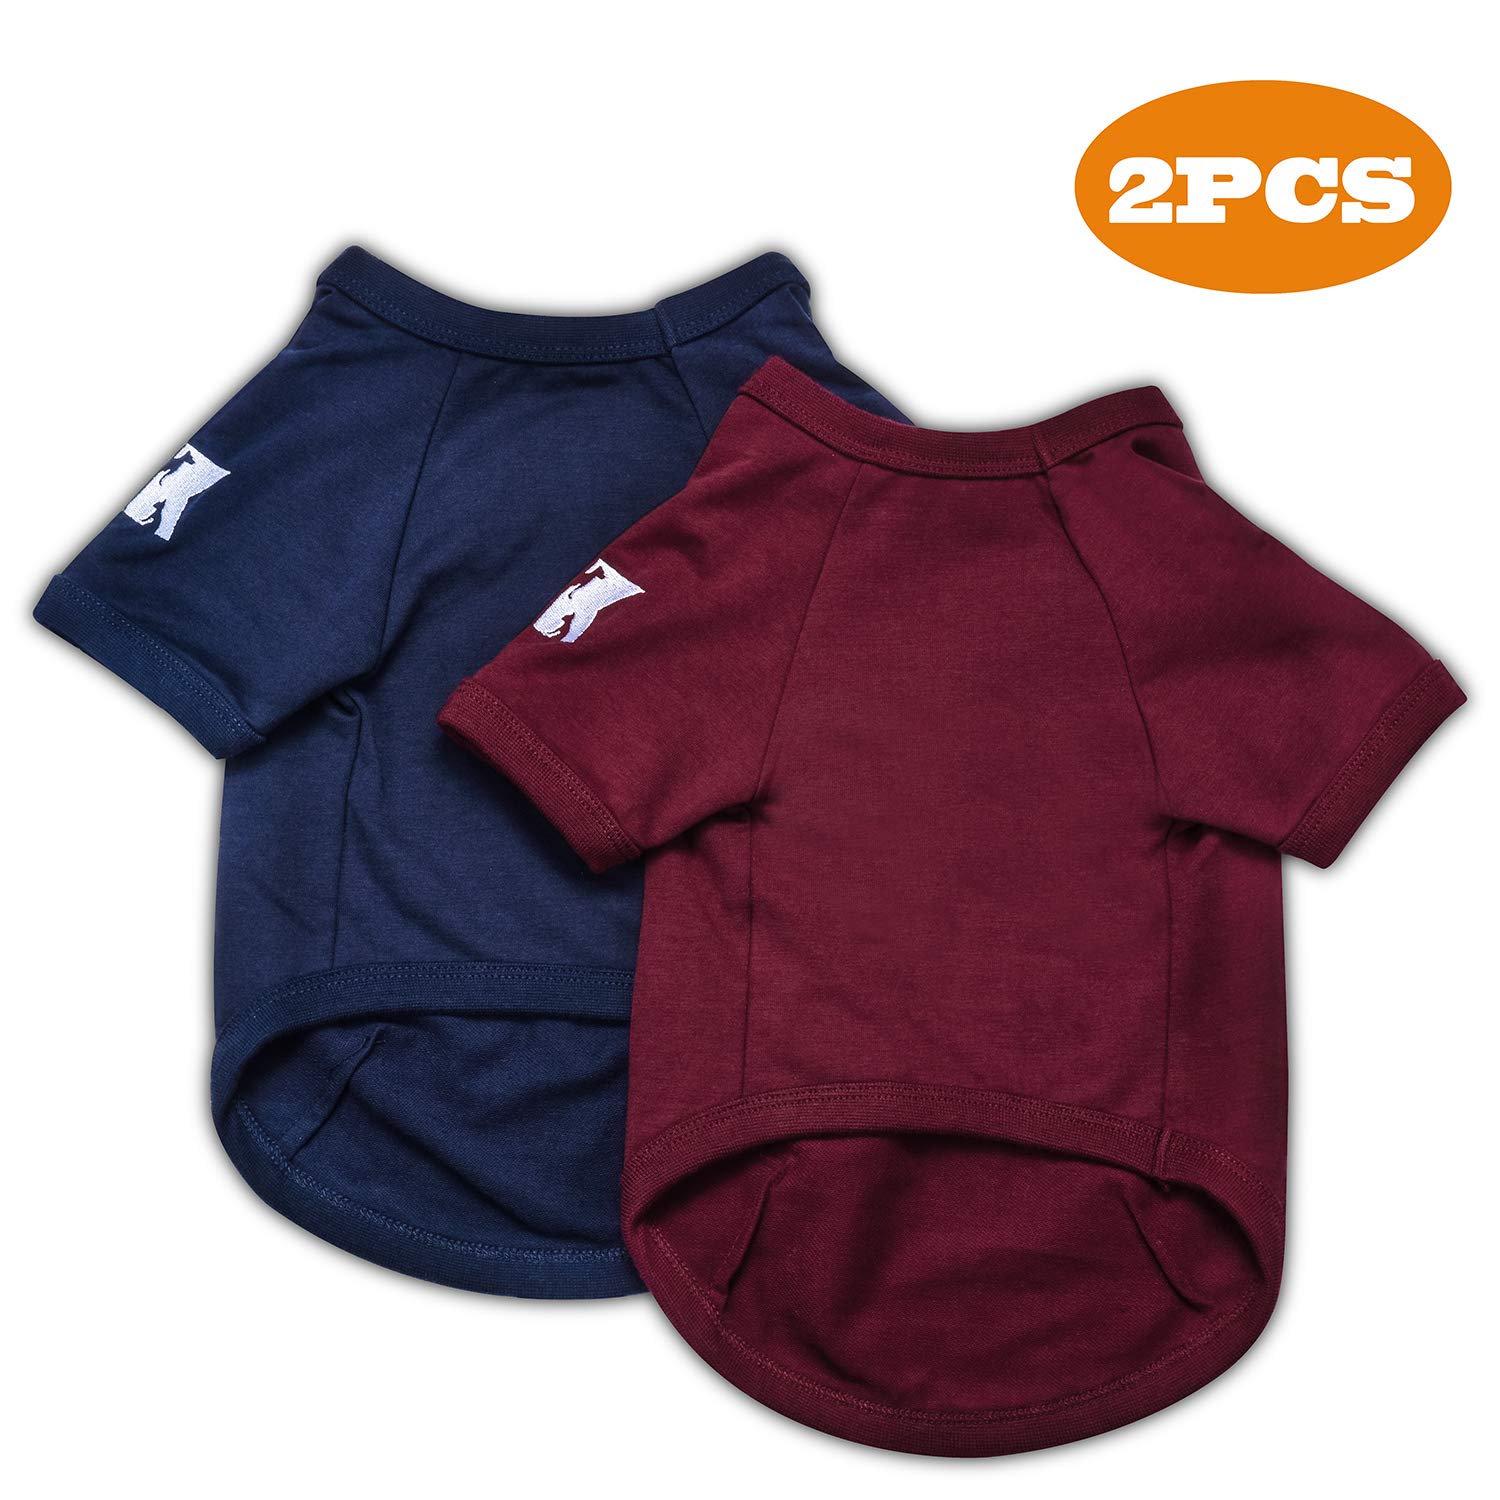 Basic Breathable Hoodie Sweater Bottoming Shirt for Small Dog Cat Puppy Animal Adorable Cozy Apparel Cute Fashion Costume Blue /& Red 2 Packs Koneseve Dog Shirts Cotton T-Shirt Soft Clothes